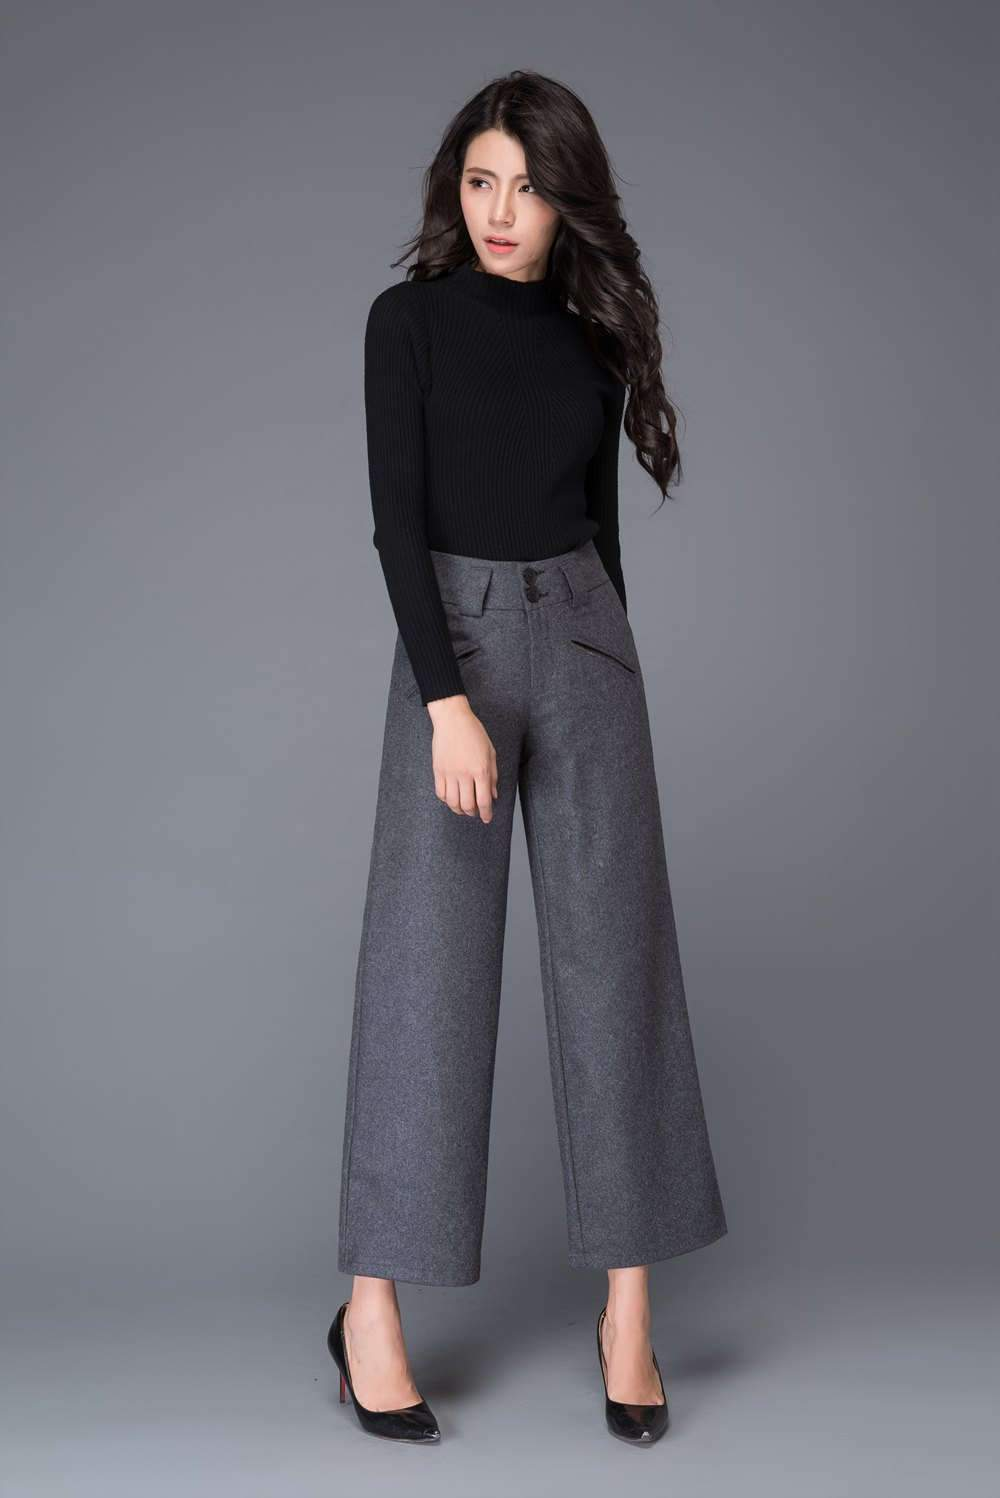 Wide leg pants, Wool pants, womens pants, grey pants, dark gray pants, winter pants, loose pants, grey trousers, palazzo pants C1002